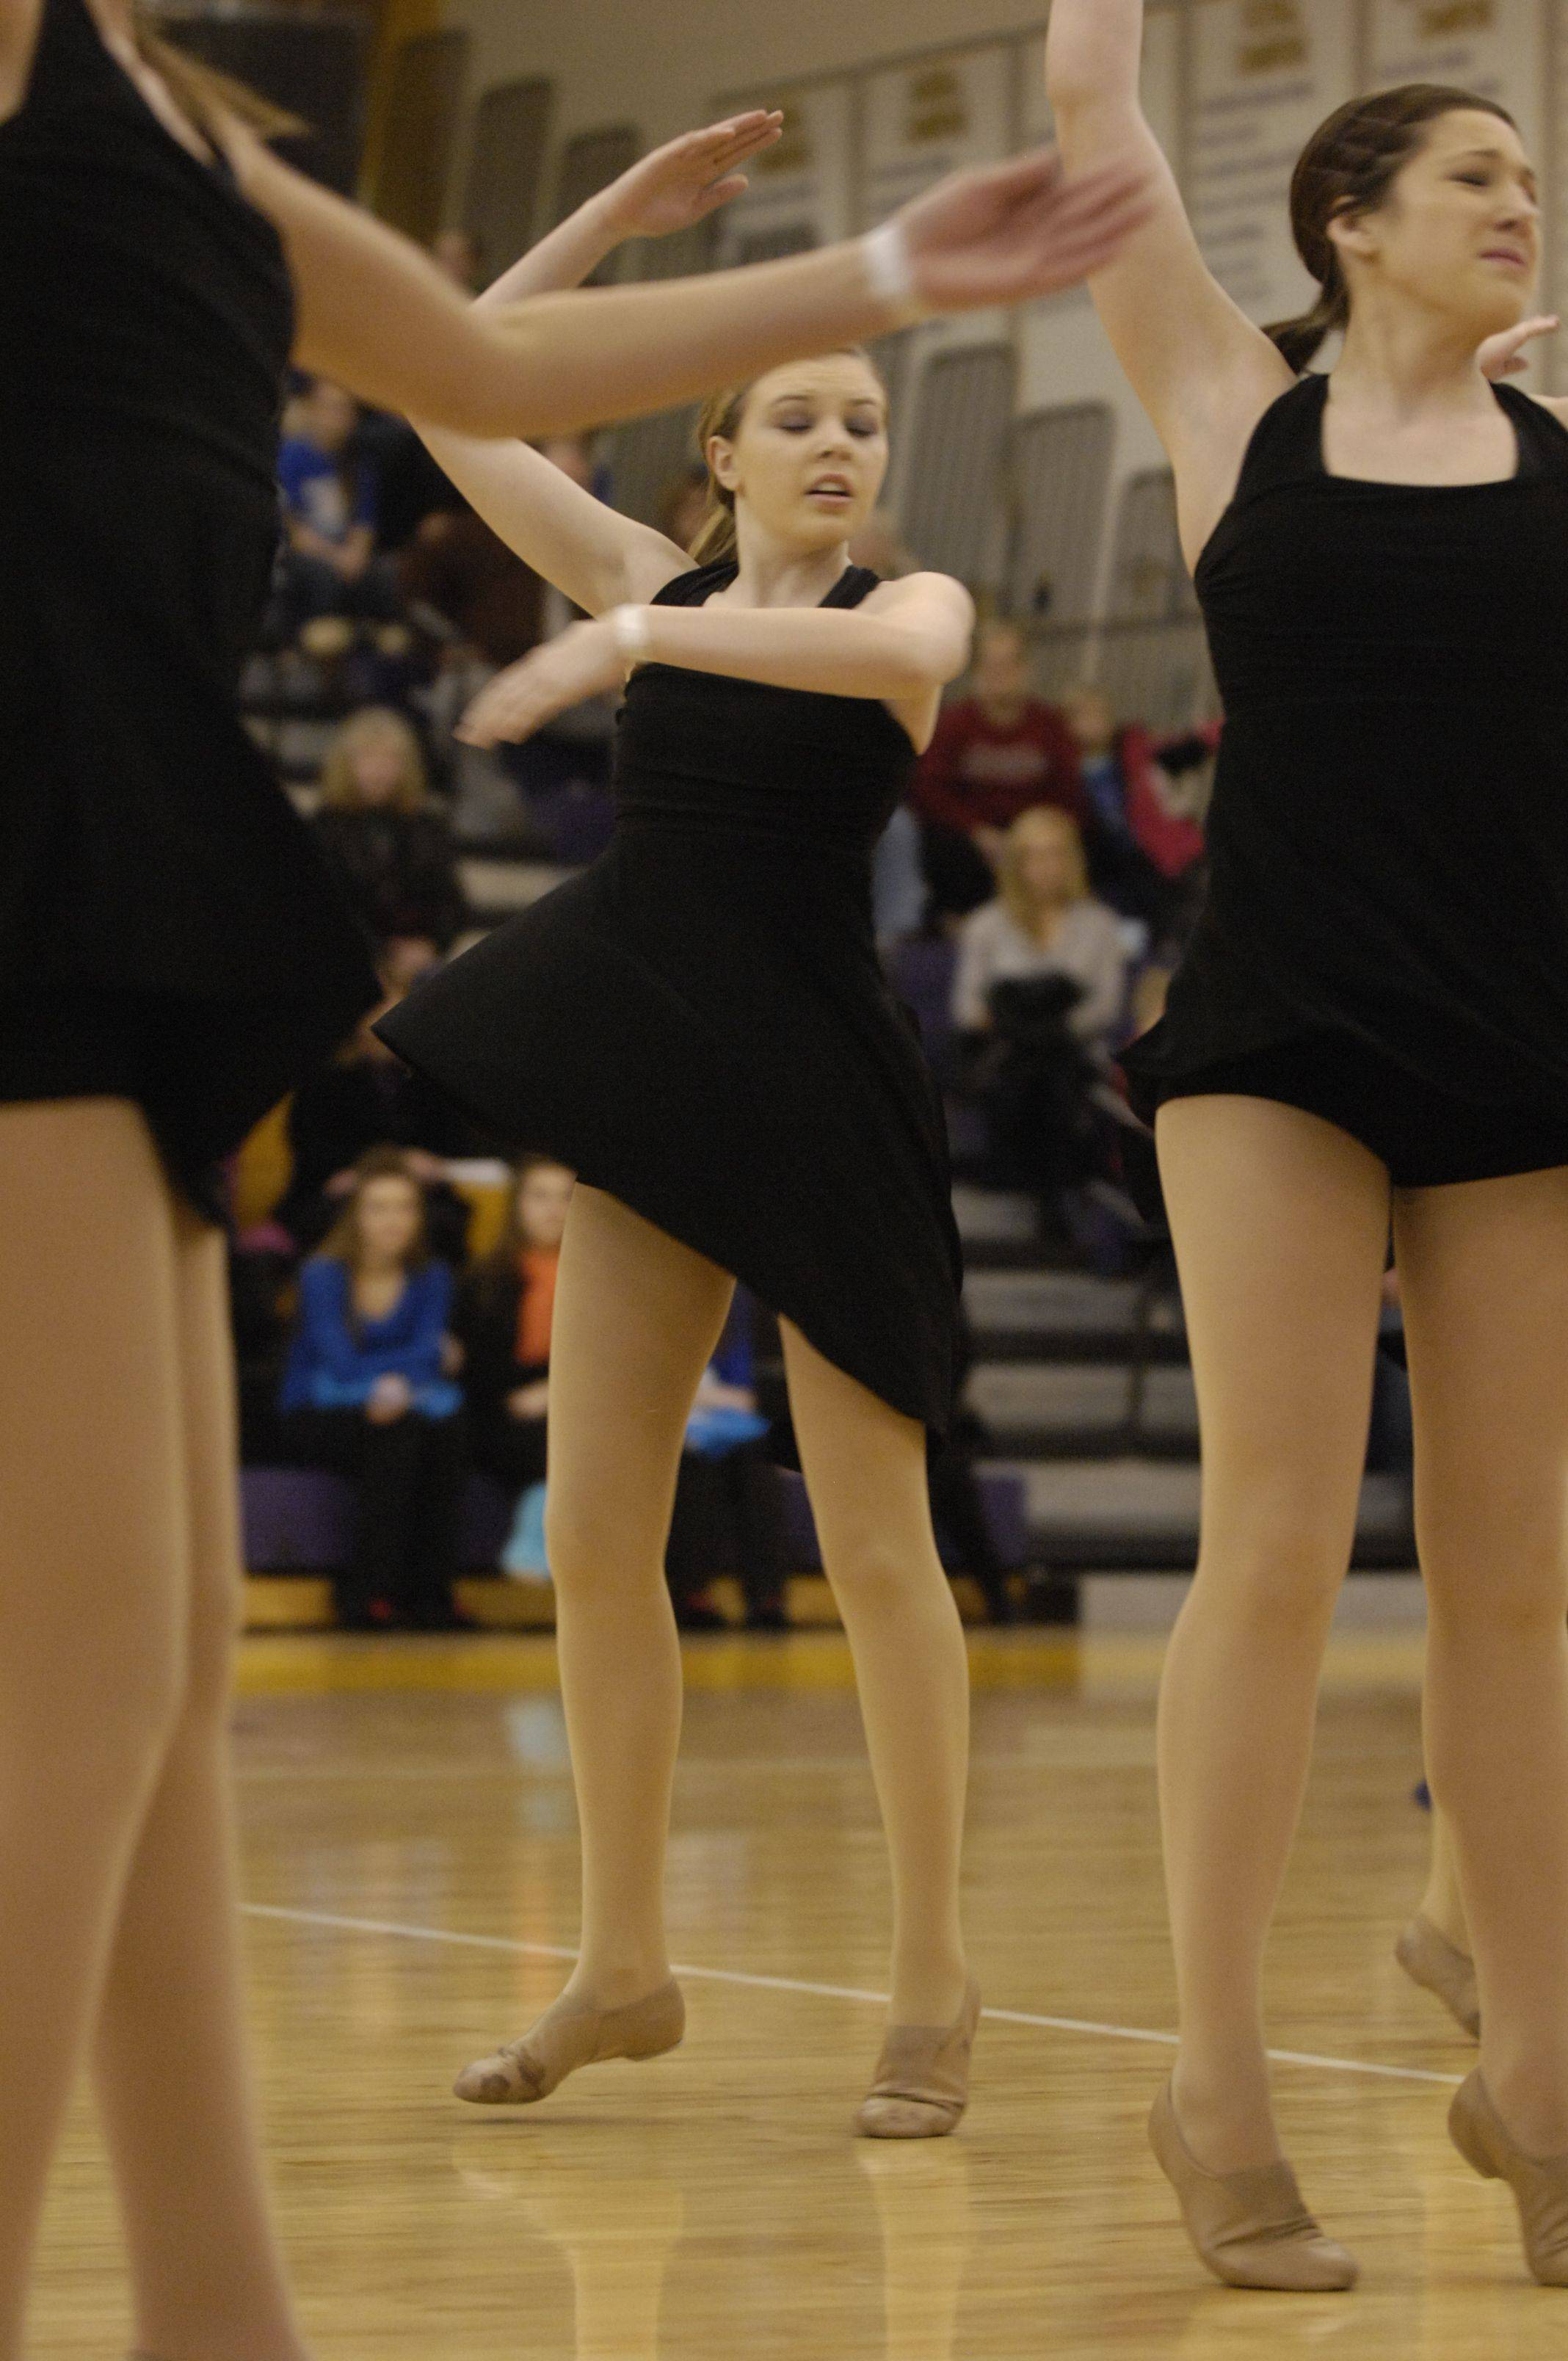 St. Charles East High School performs in the JV Lyrical division during the Team Dance Illinois Wauconda Invitational competition at Wauconda High School.